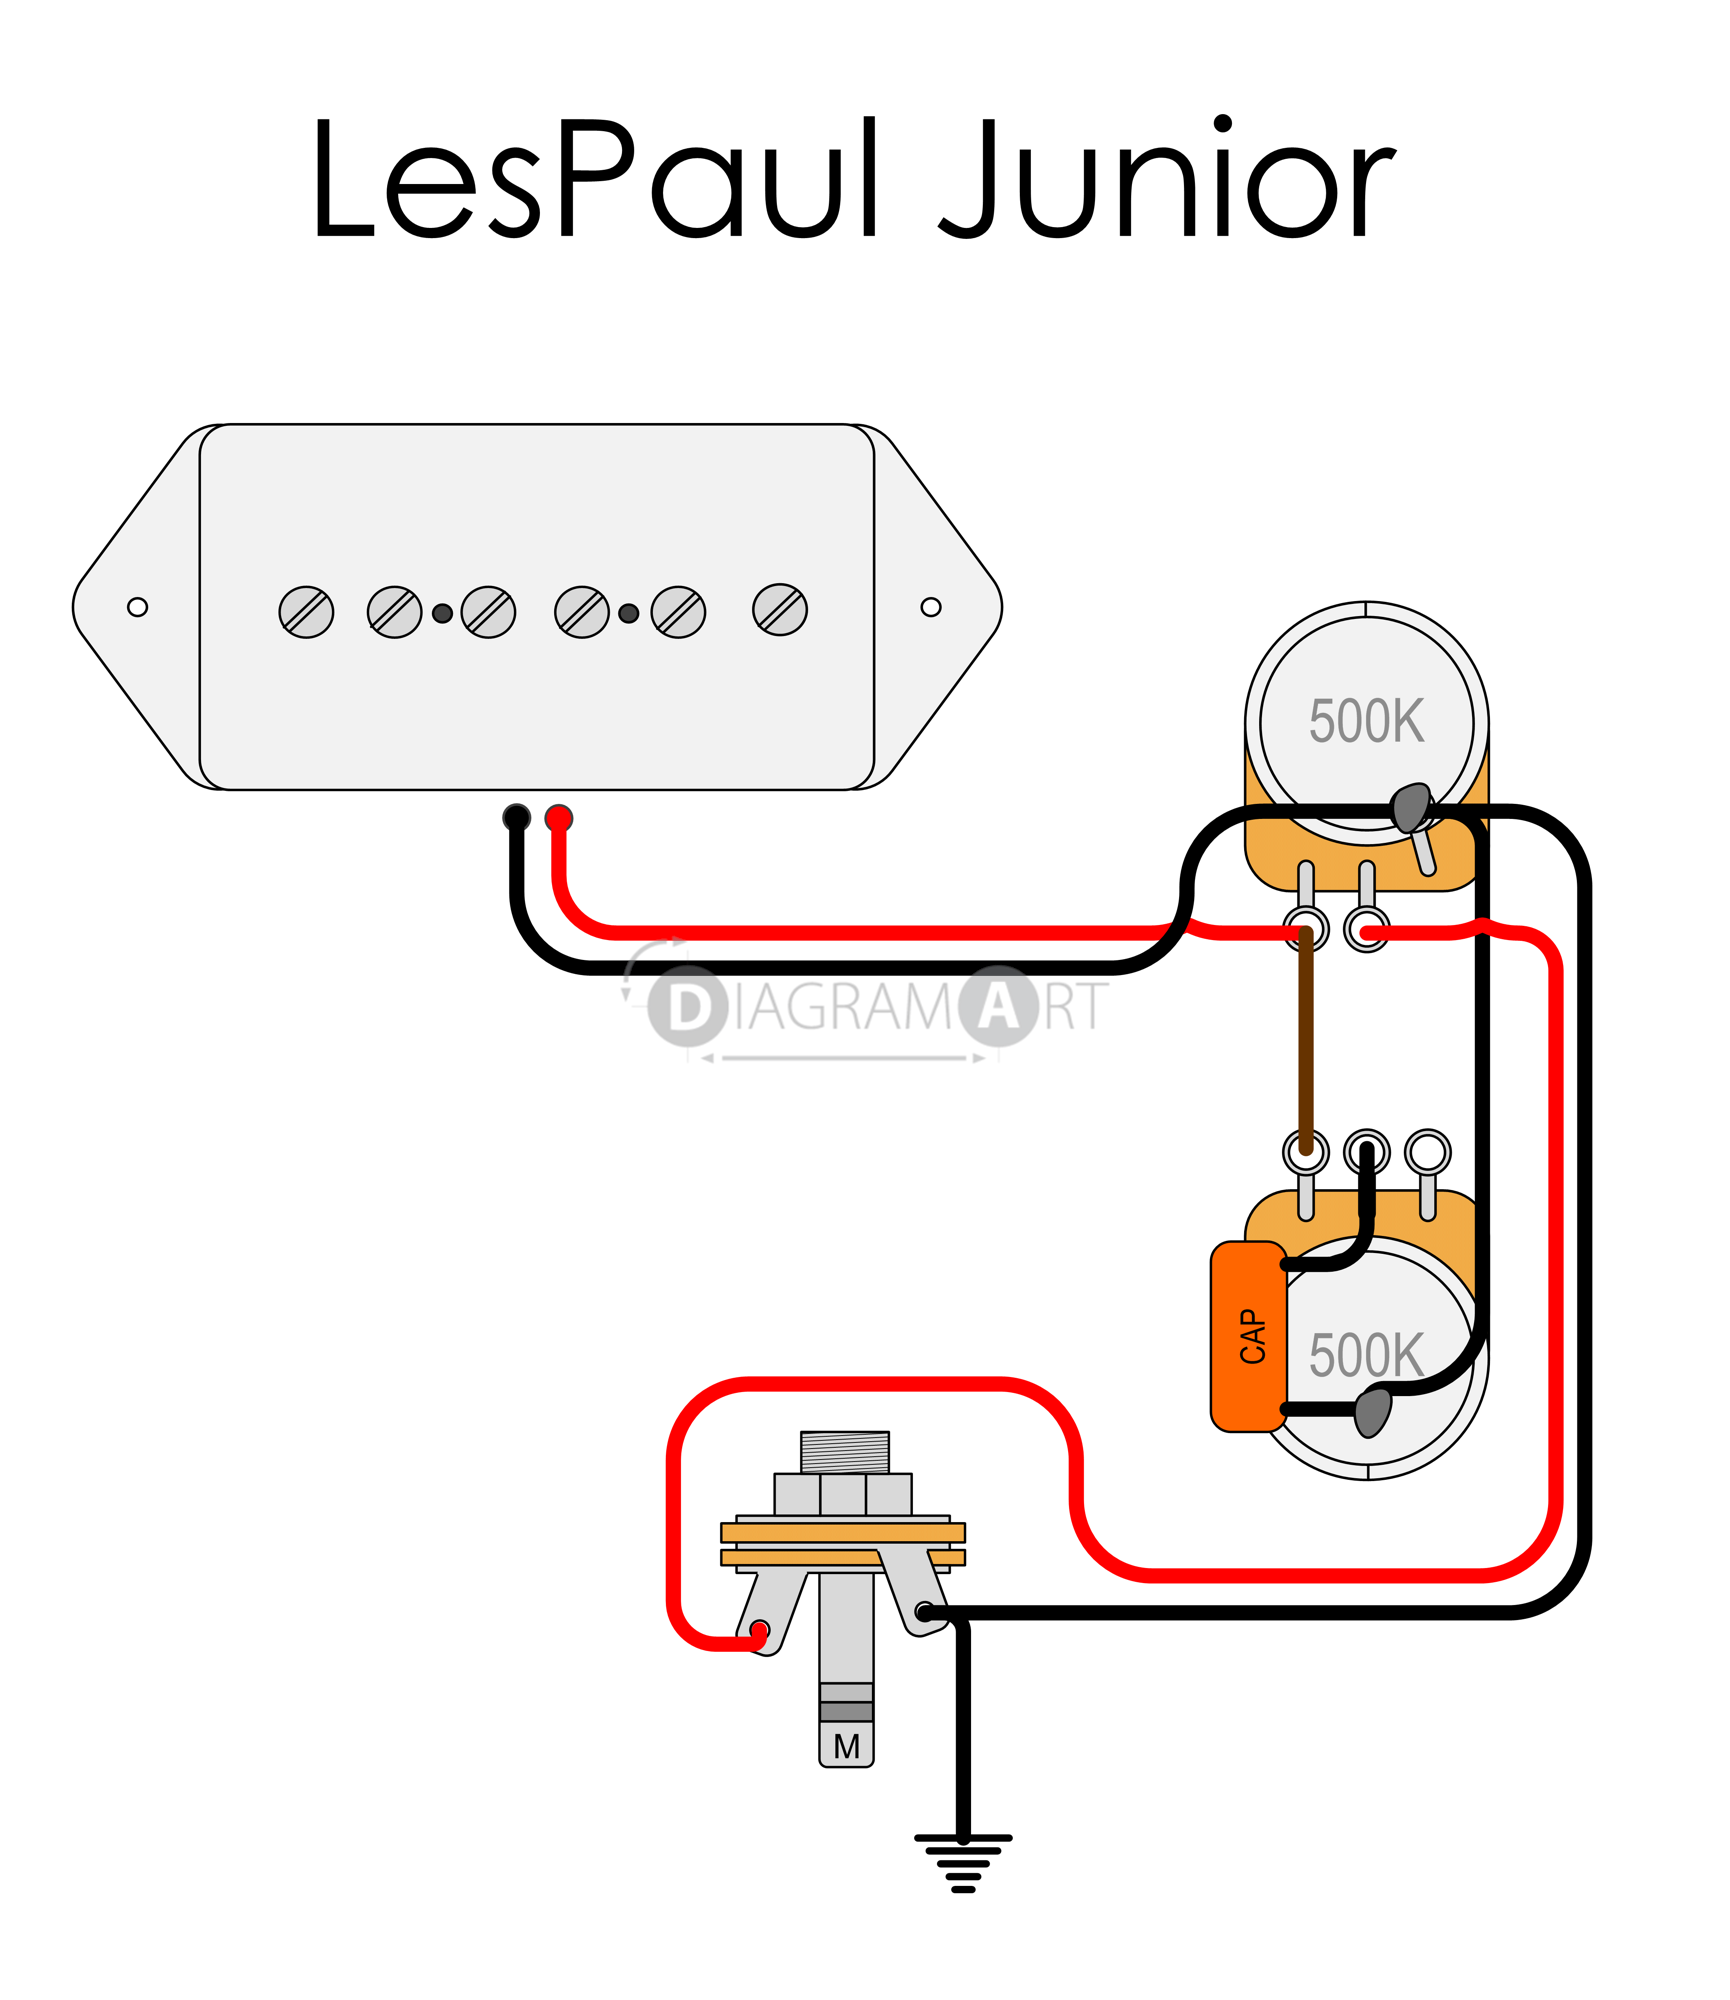 Gibson Les Paul Standard 2013 Wiring Diagram Great Installation Of Push Pull Guitar For Yamaha Studio Third Level Rh 9 3 13 Jacobwinterstein Com Epiphone Sg